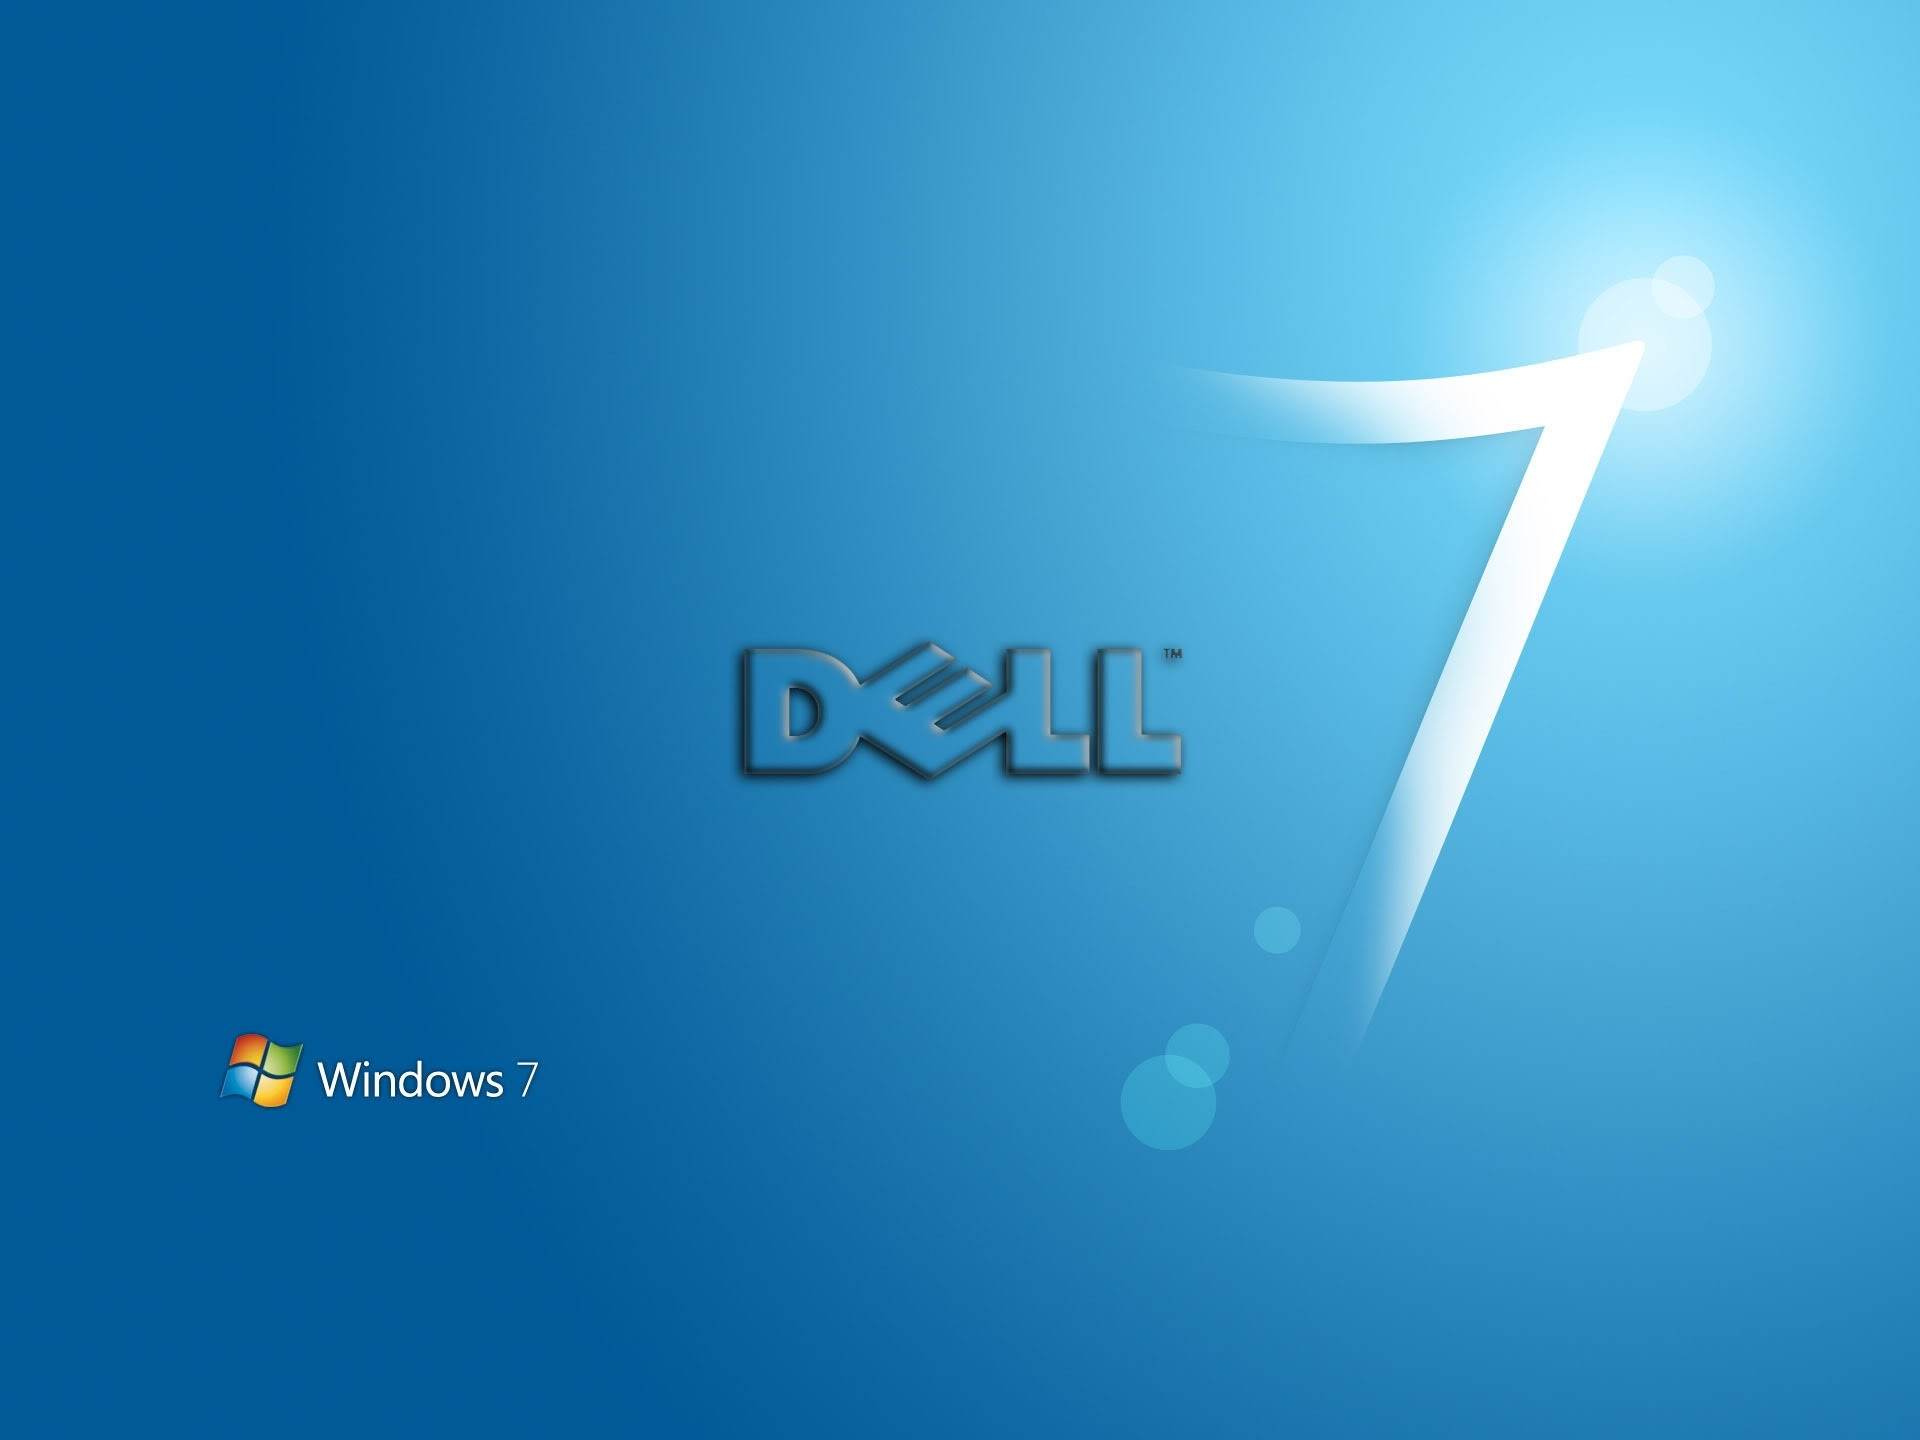 dell windows 7 desktop wallpaper (63+ images)